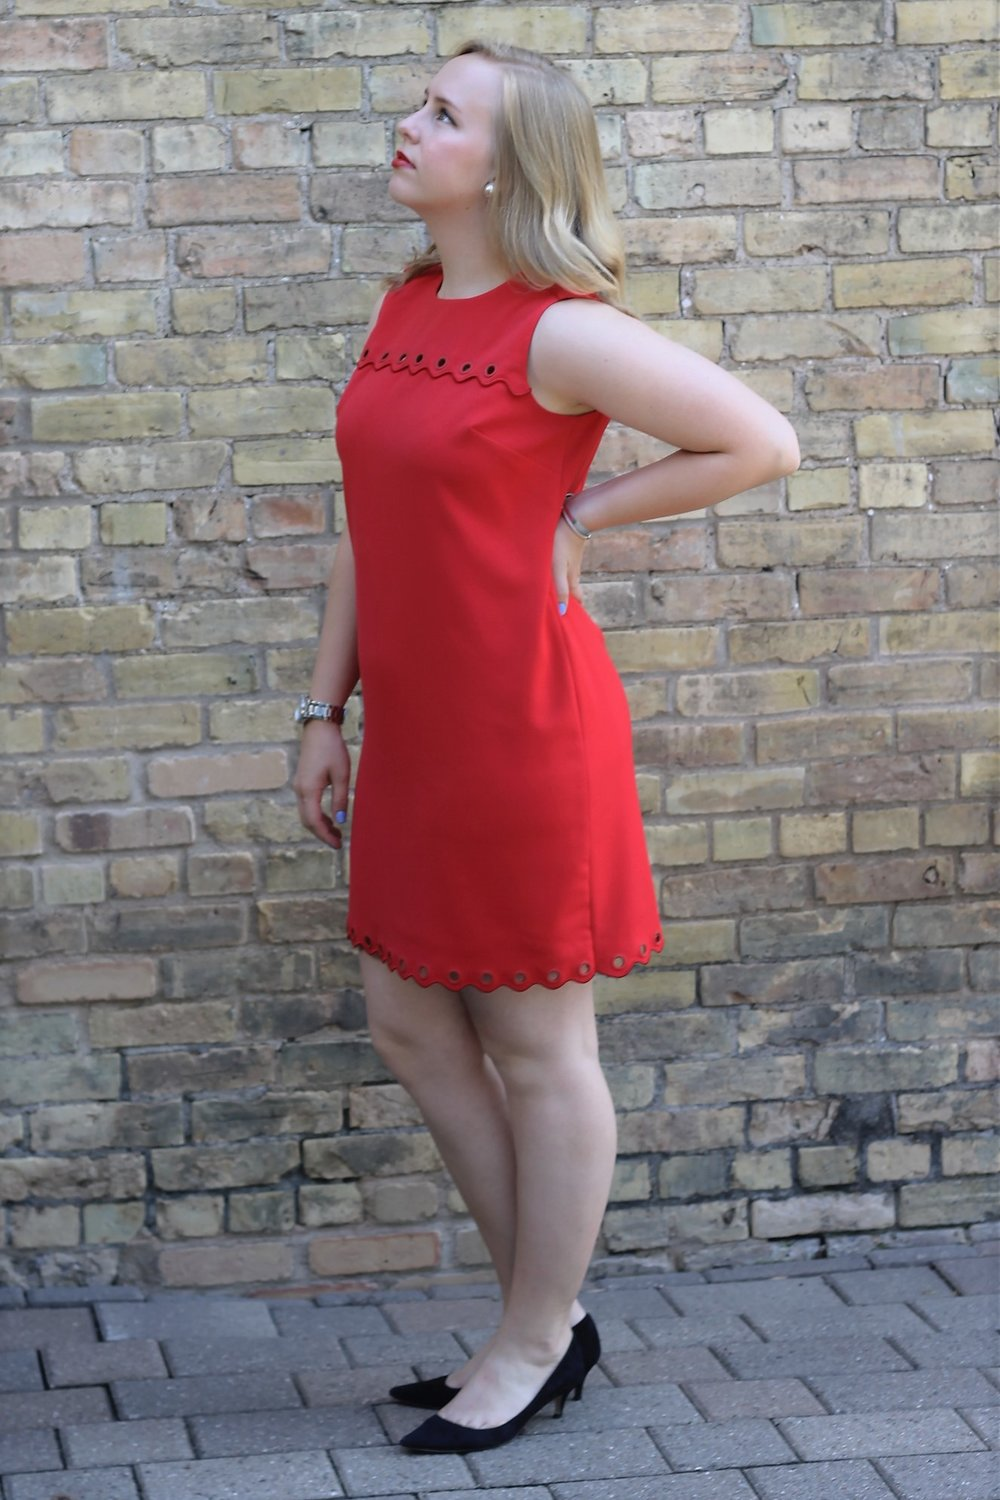 First Post   Red Summer Dress Transitions to Business Wear   Work & What She Wore